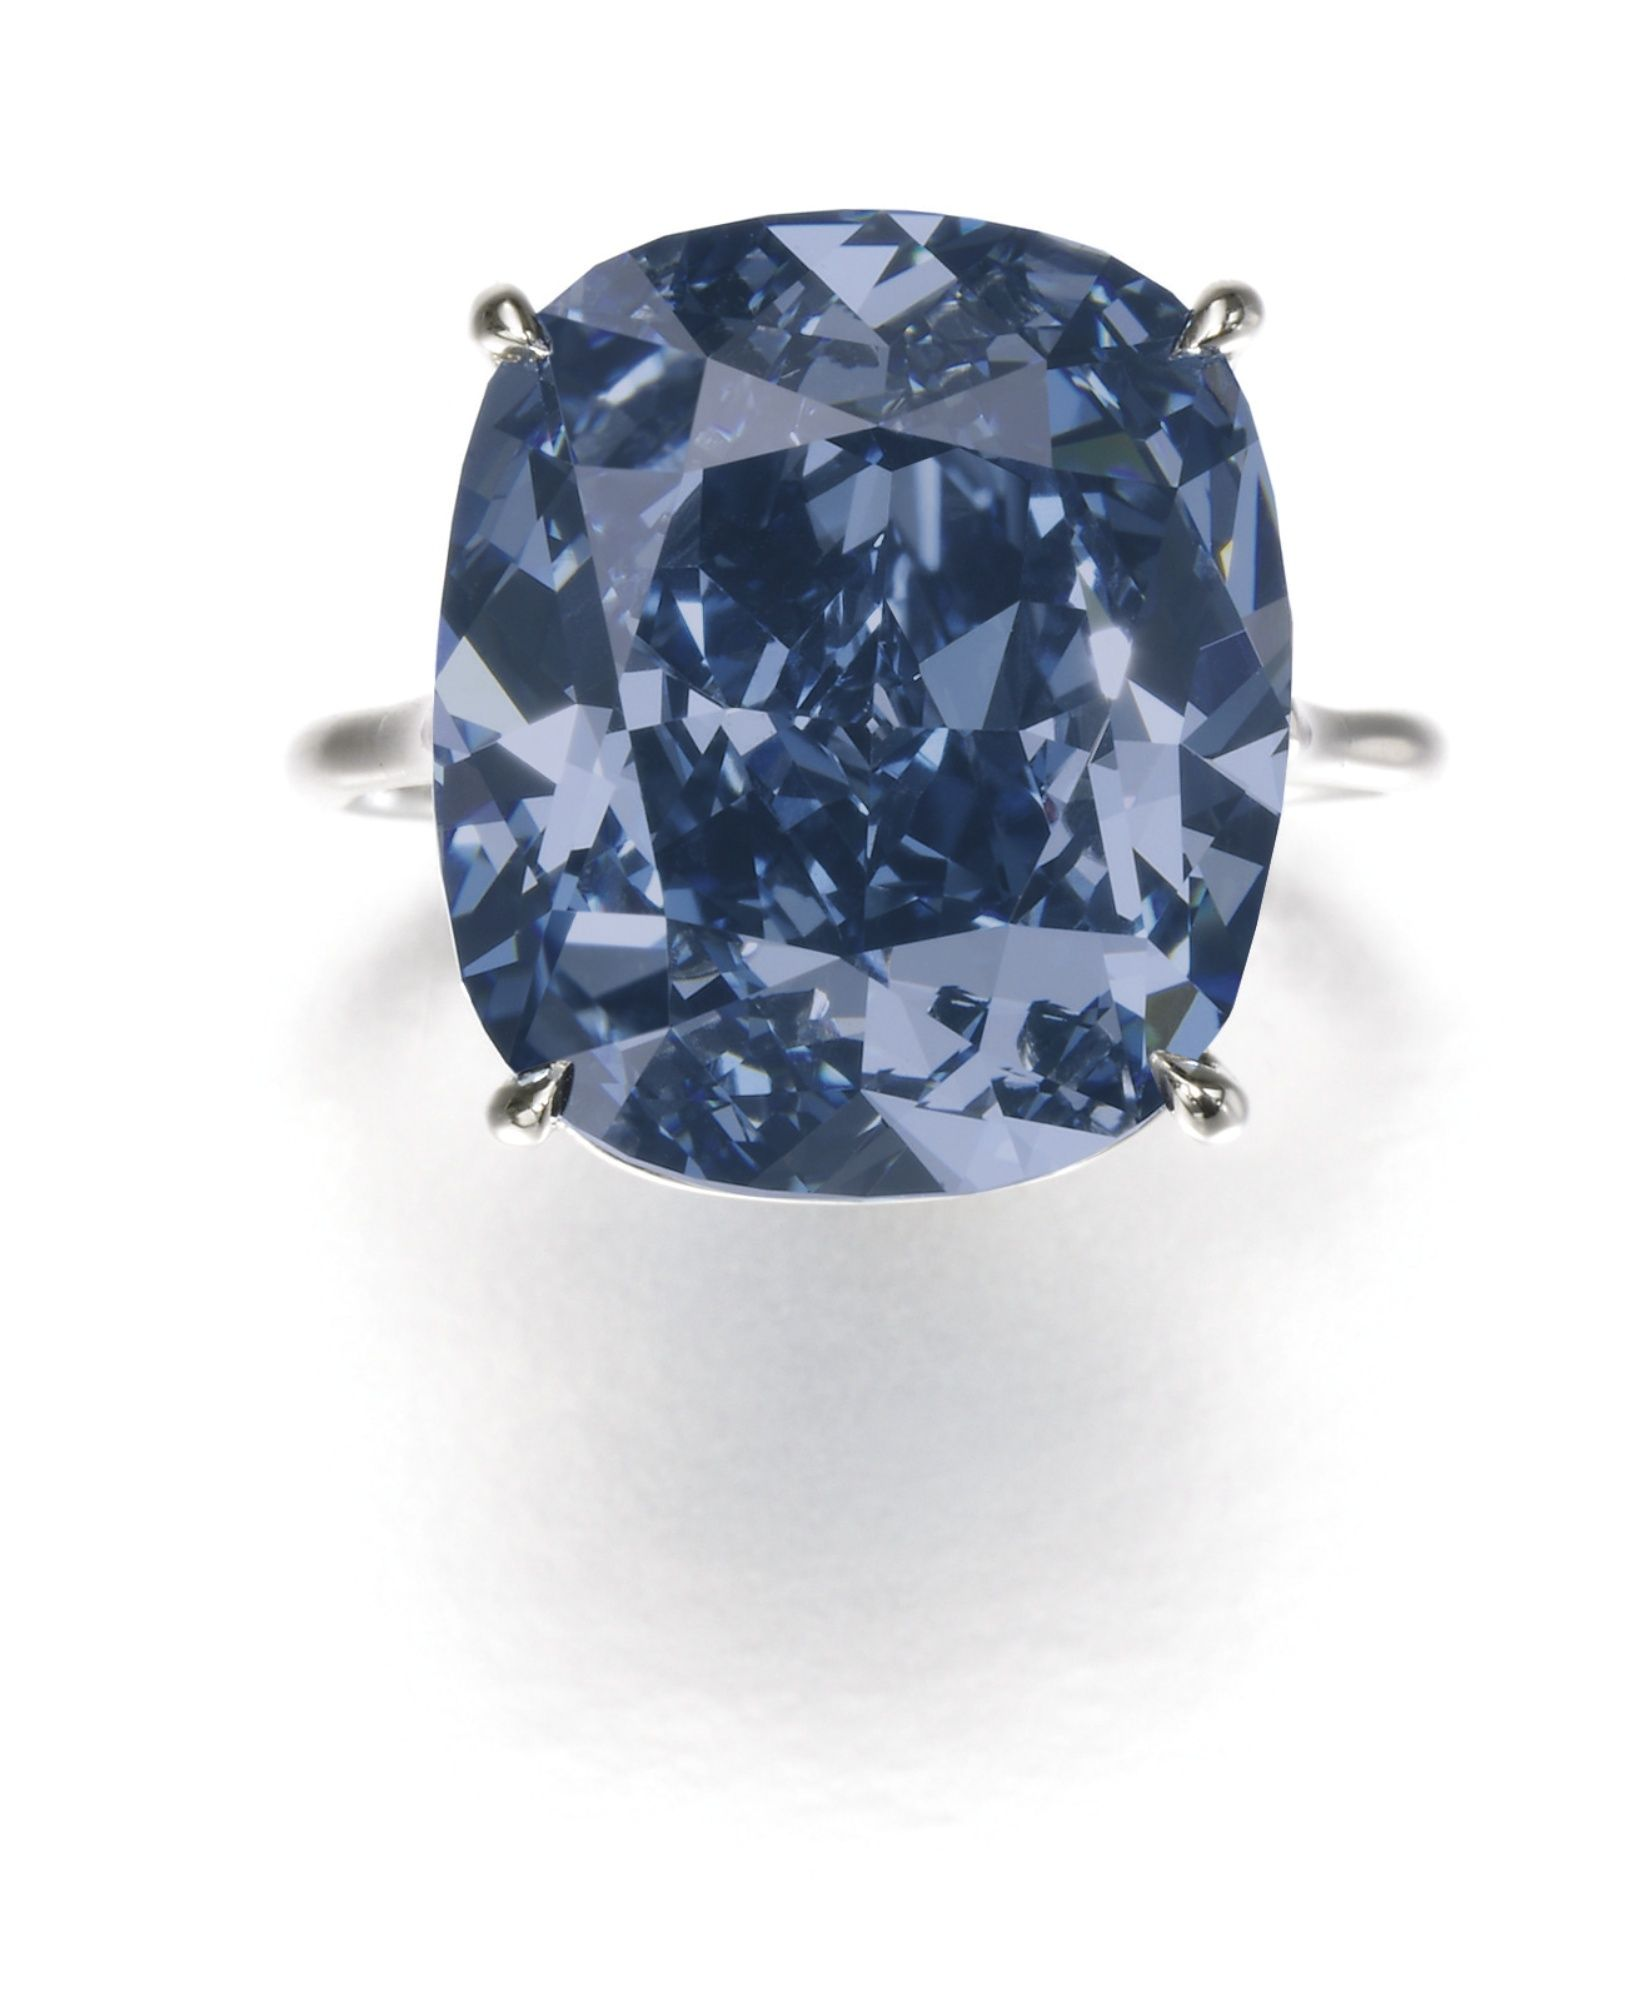 The Blue Moon An exceptional Fancy Vivid Blue diamond ring